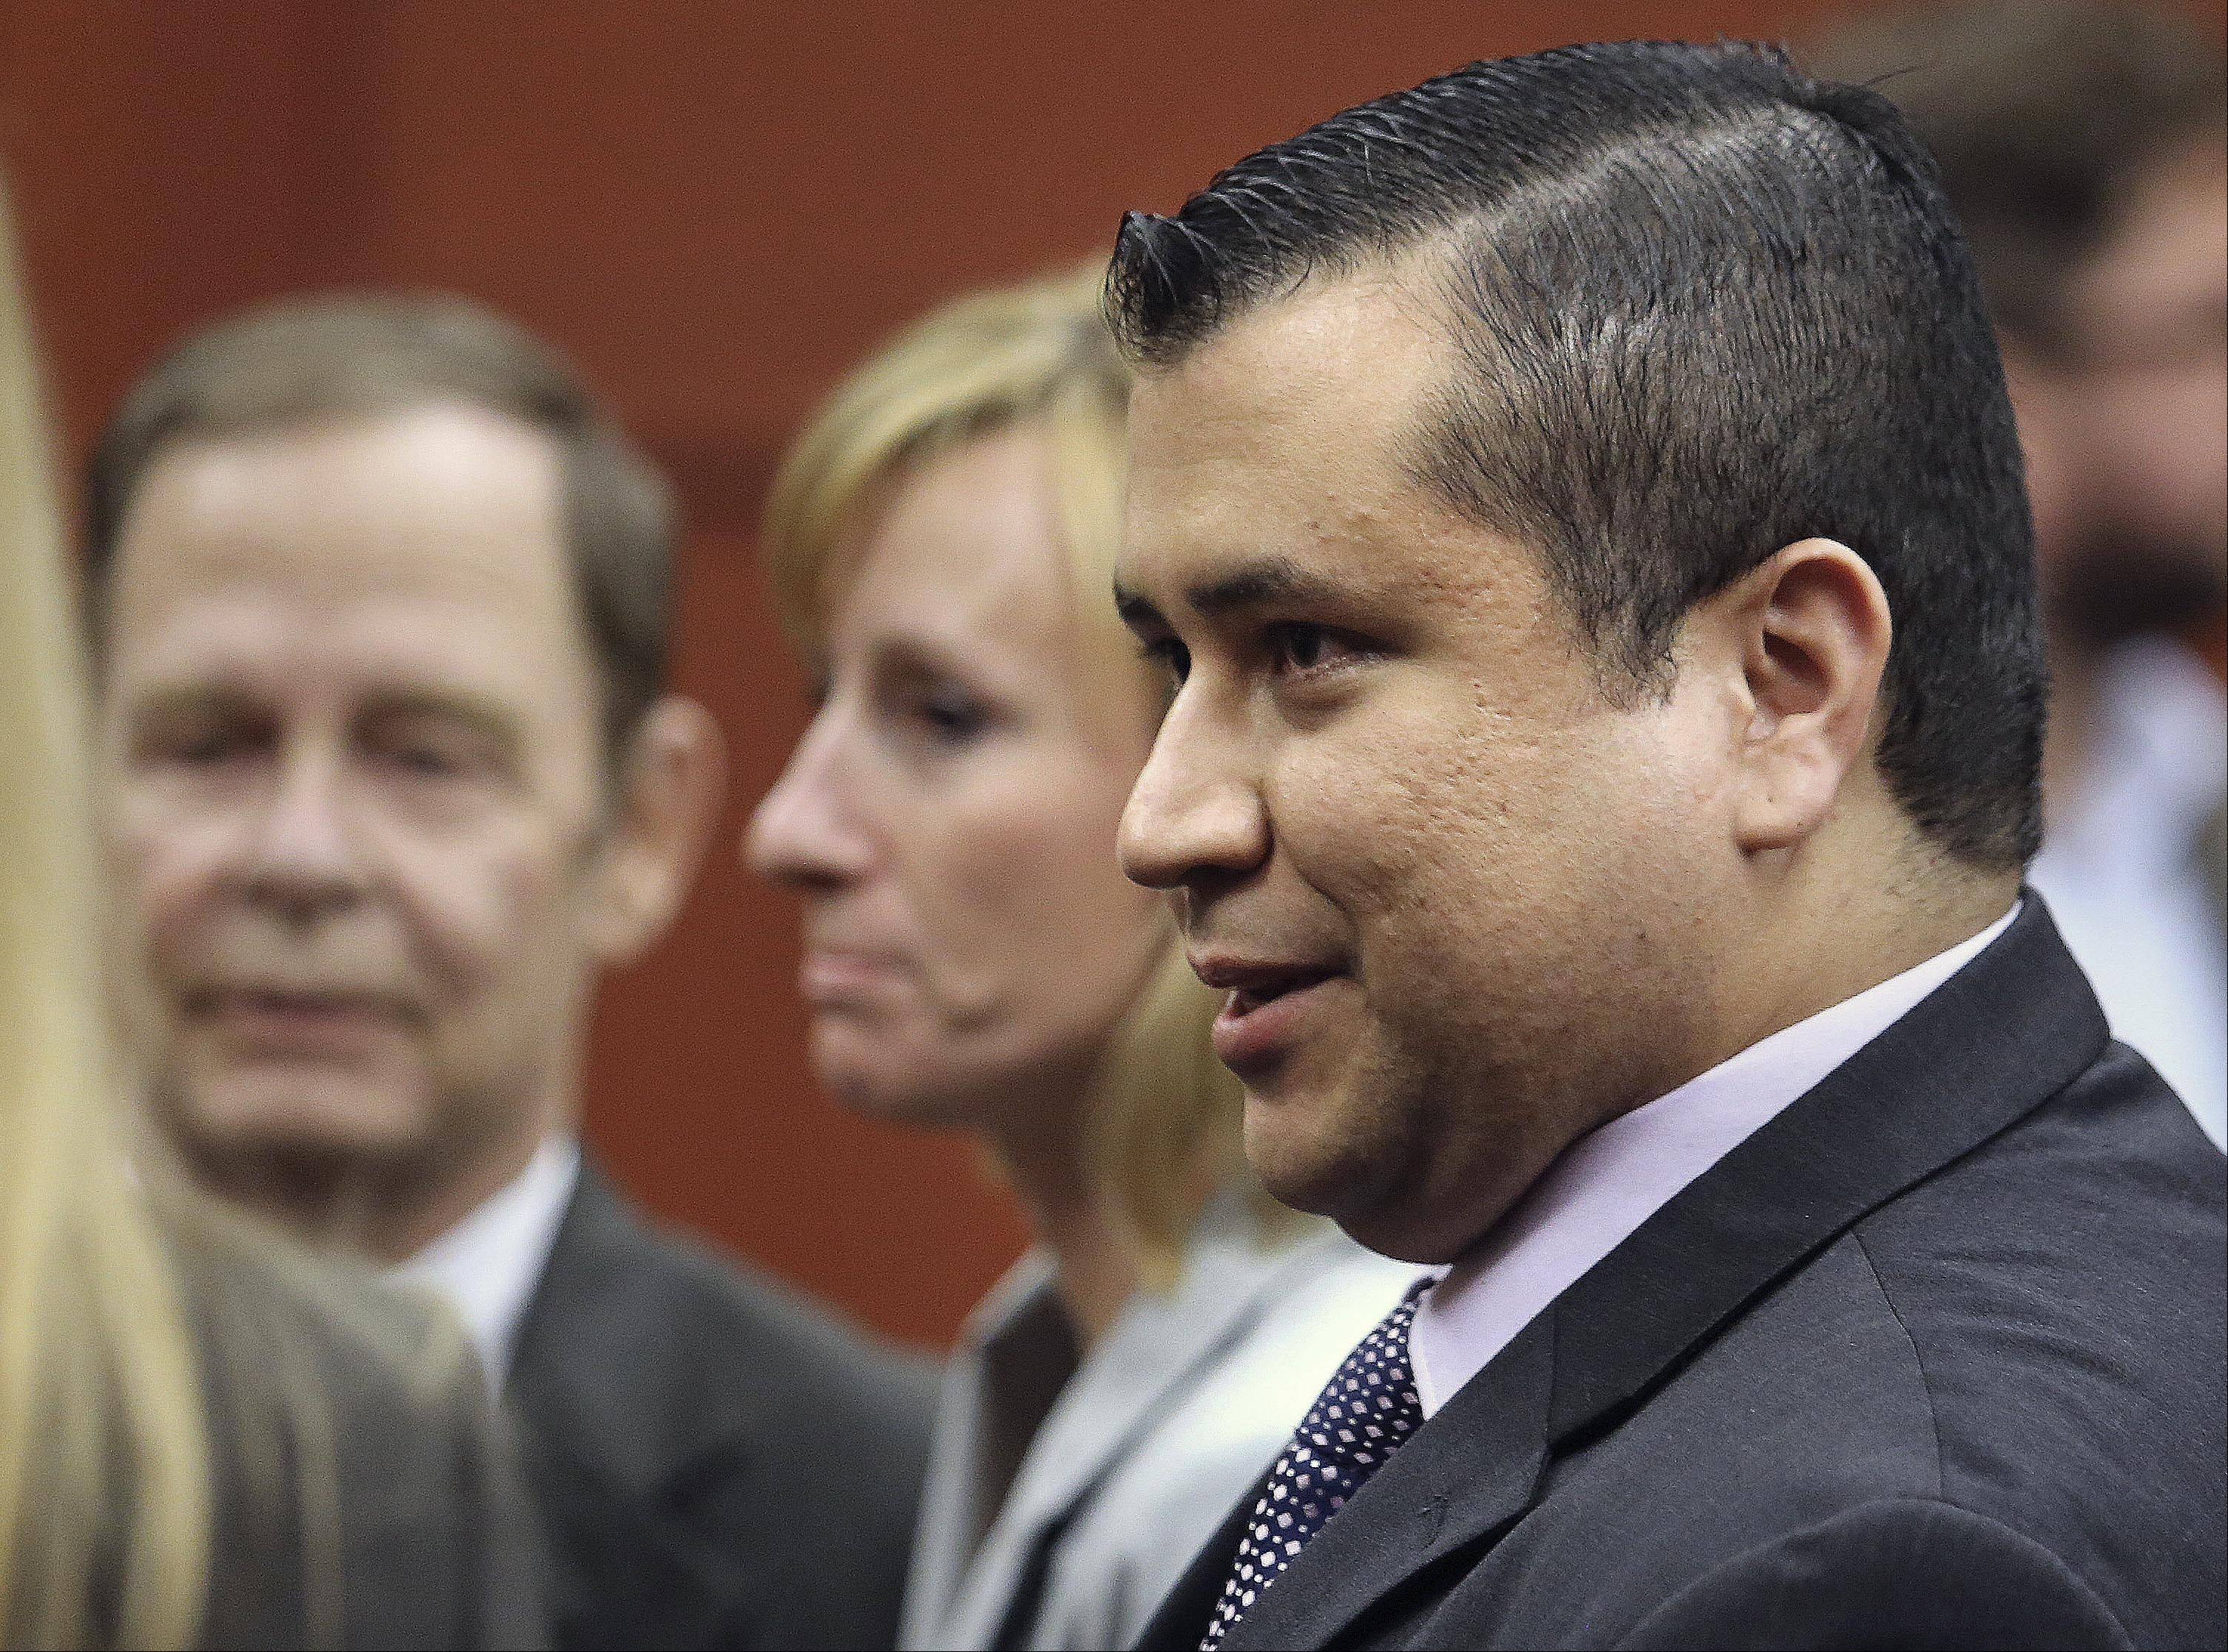 George Zimmerman leaves court with his family after the verdict was announced July 13. (AP Photo)